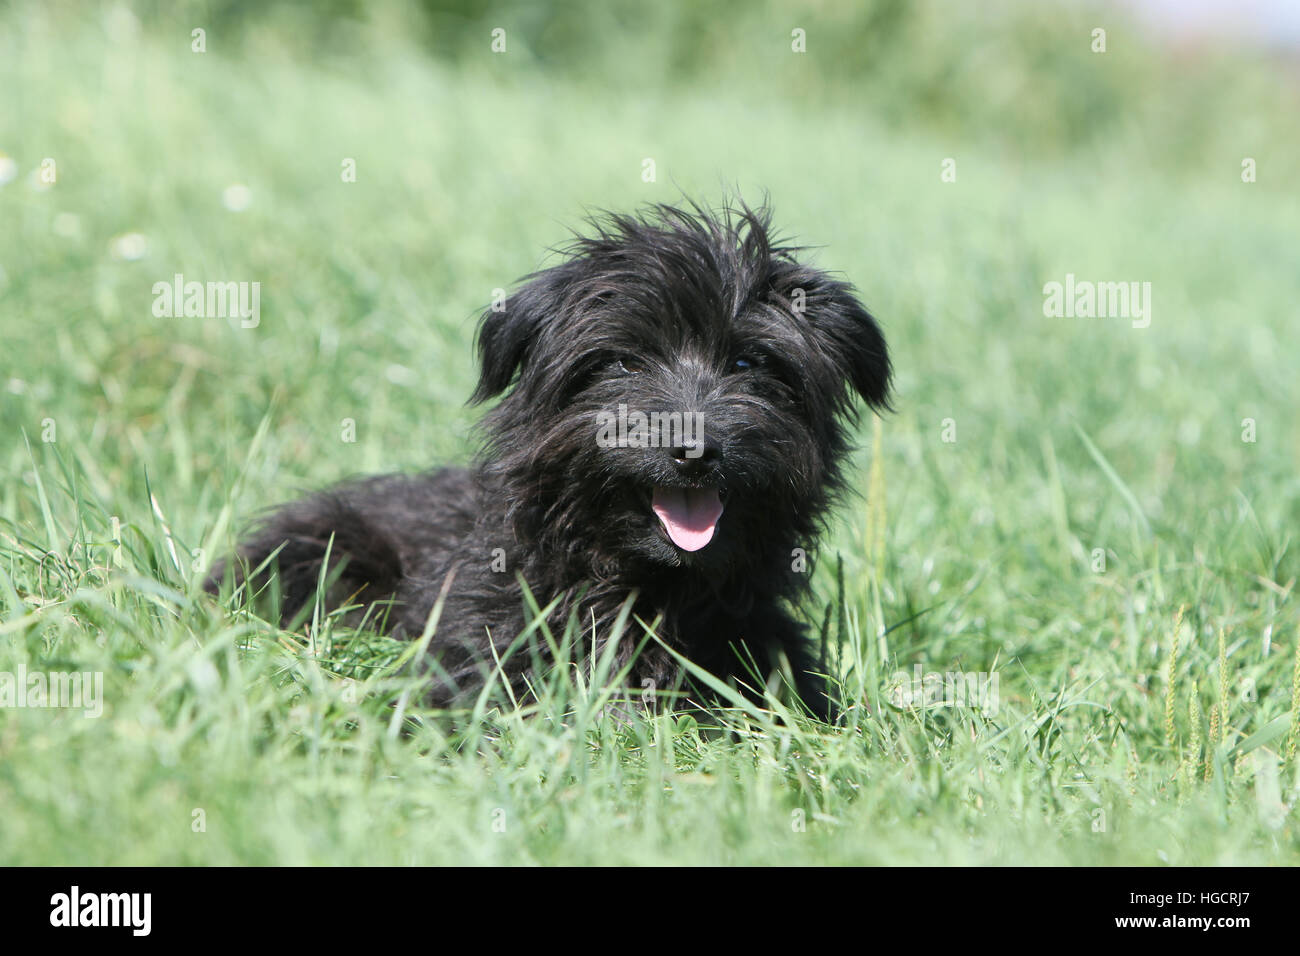 Dog Pyrenean Shepherd adult adults lying in a meadow black face Stock Photo